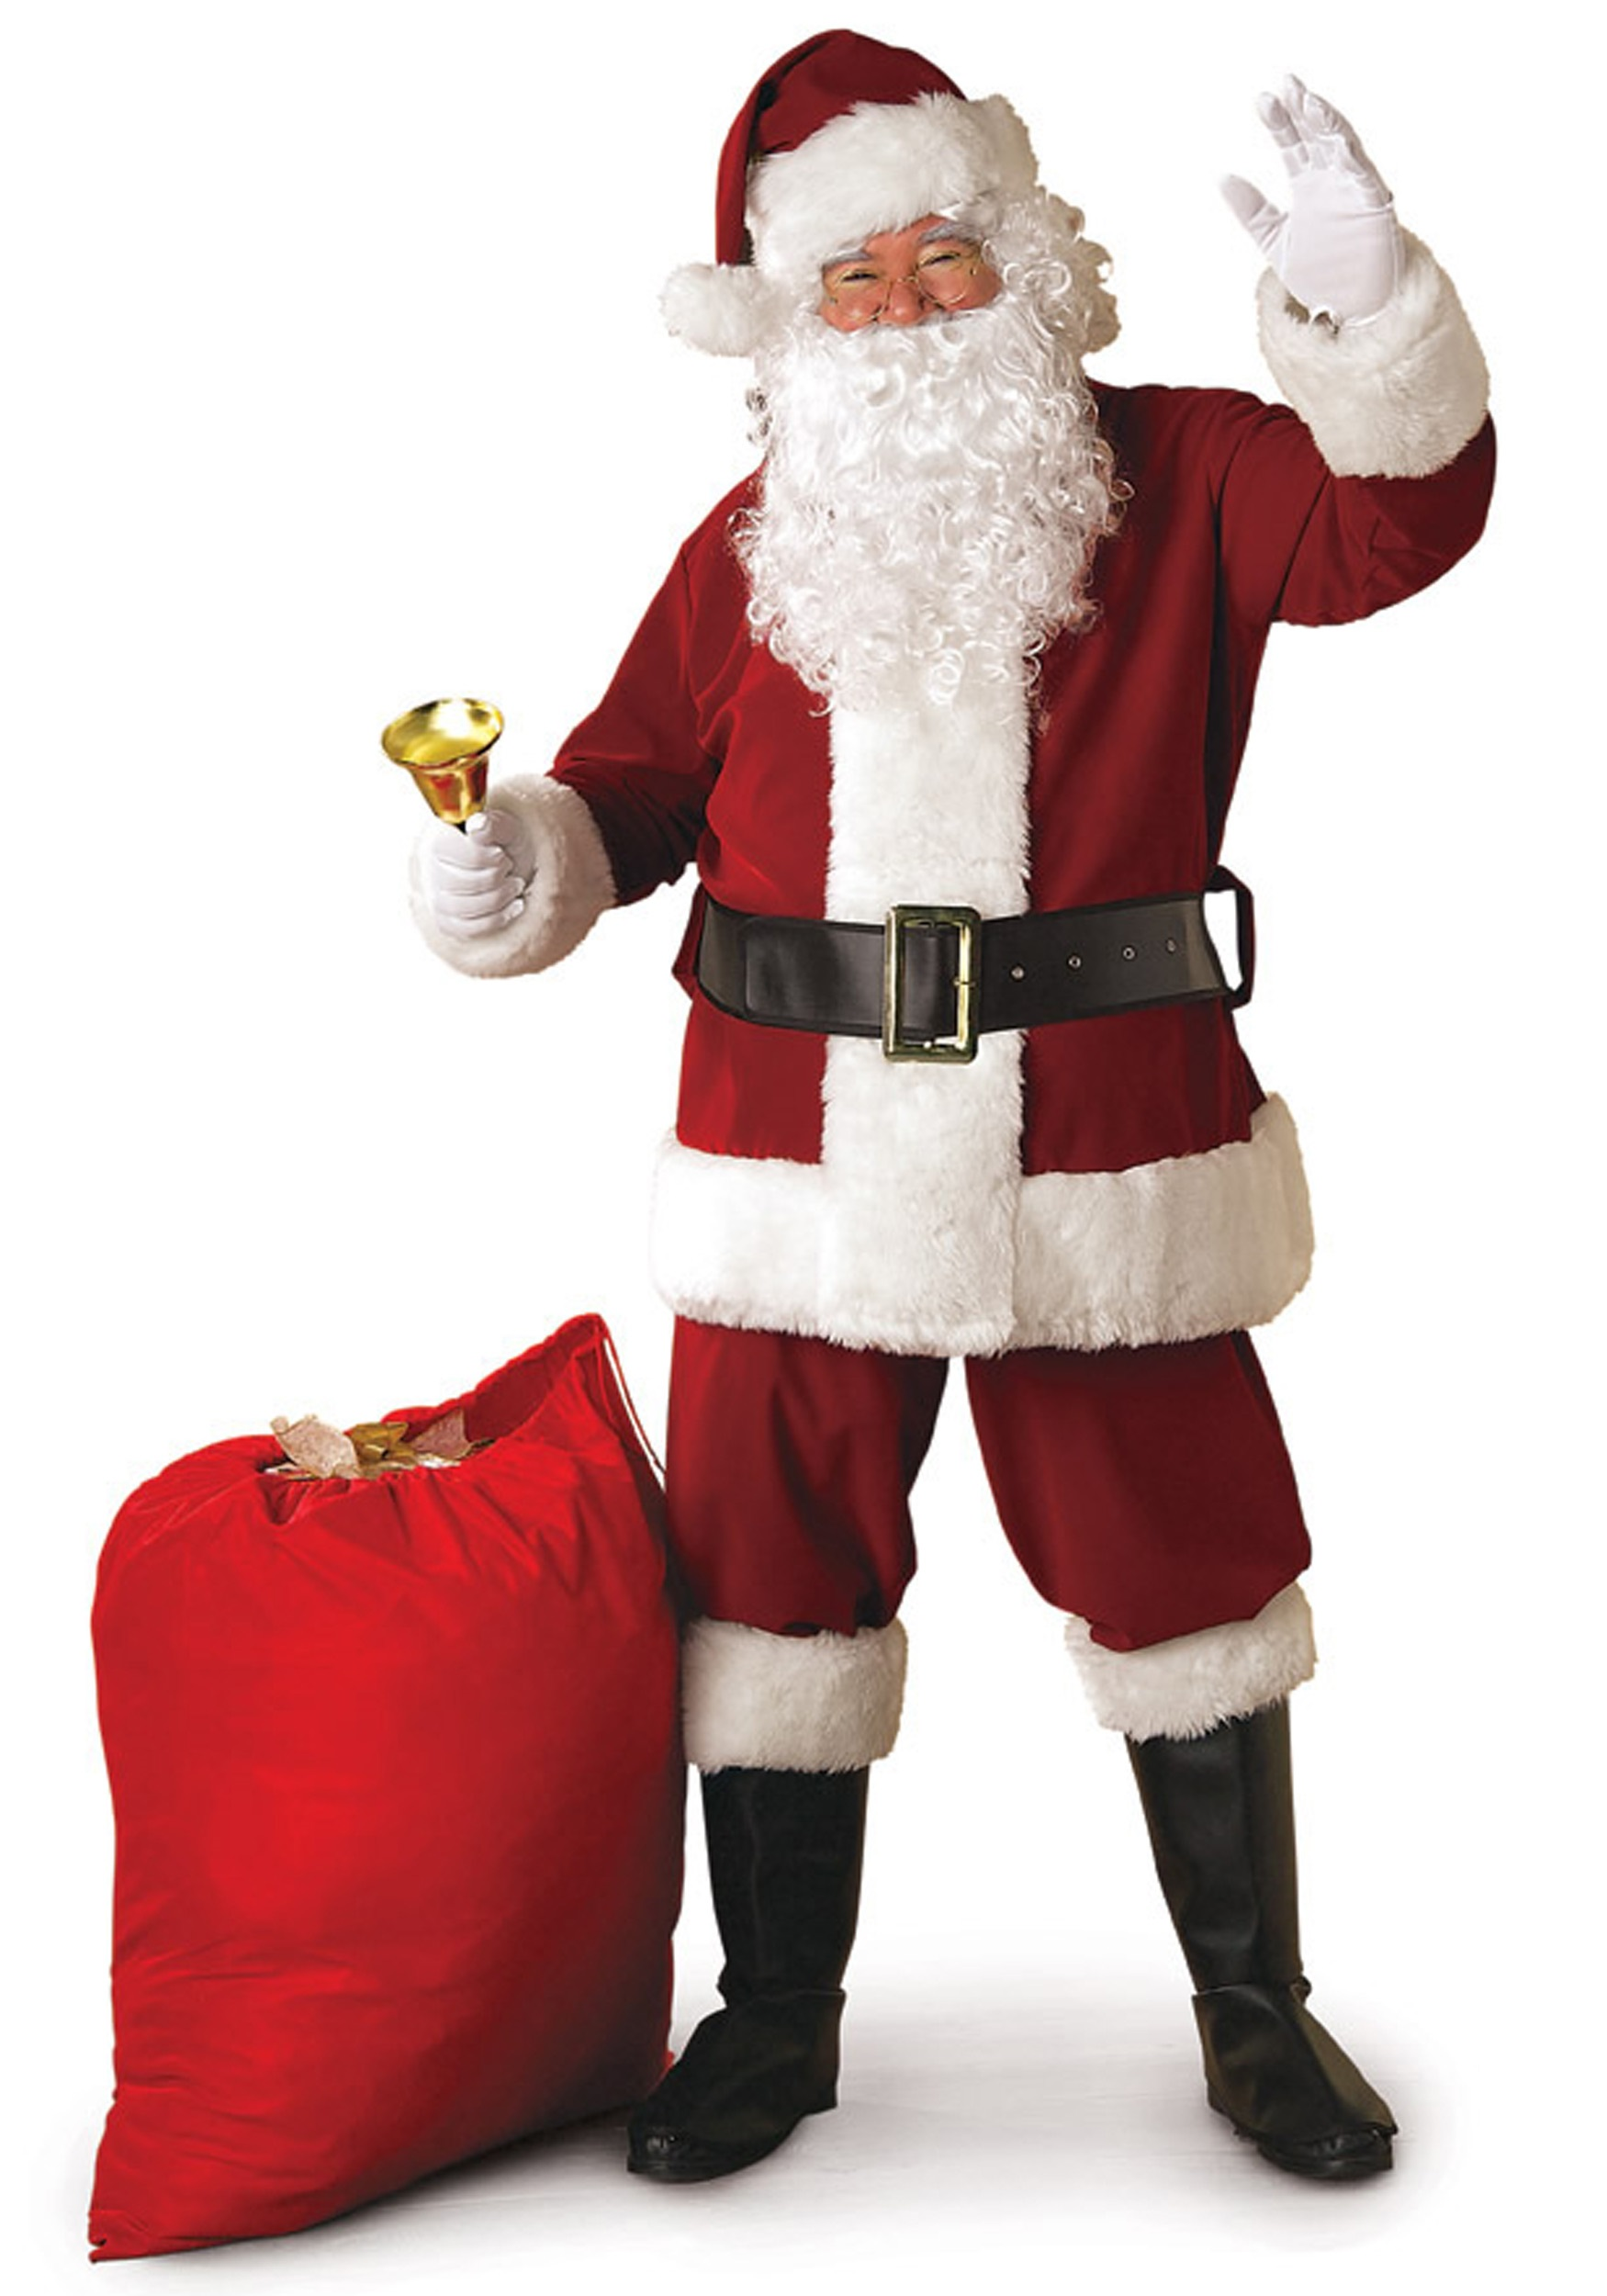 b0a6b00b5aaa5 Regal Santa Suit Costume - Deluxe Crimson Santa Claus Costume